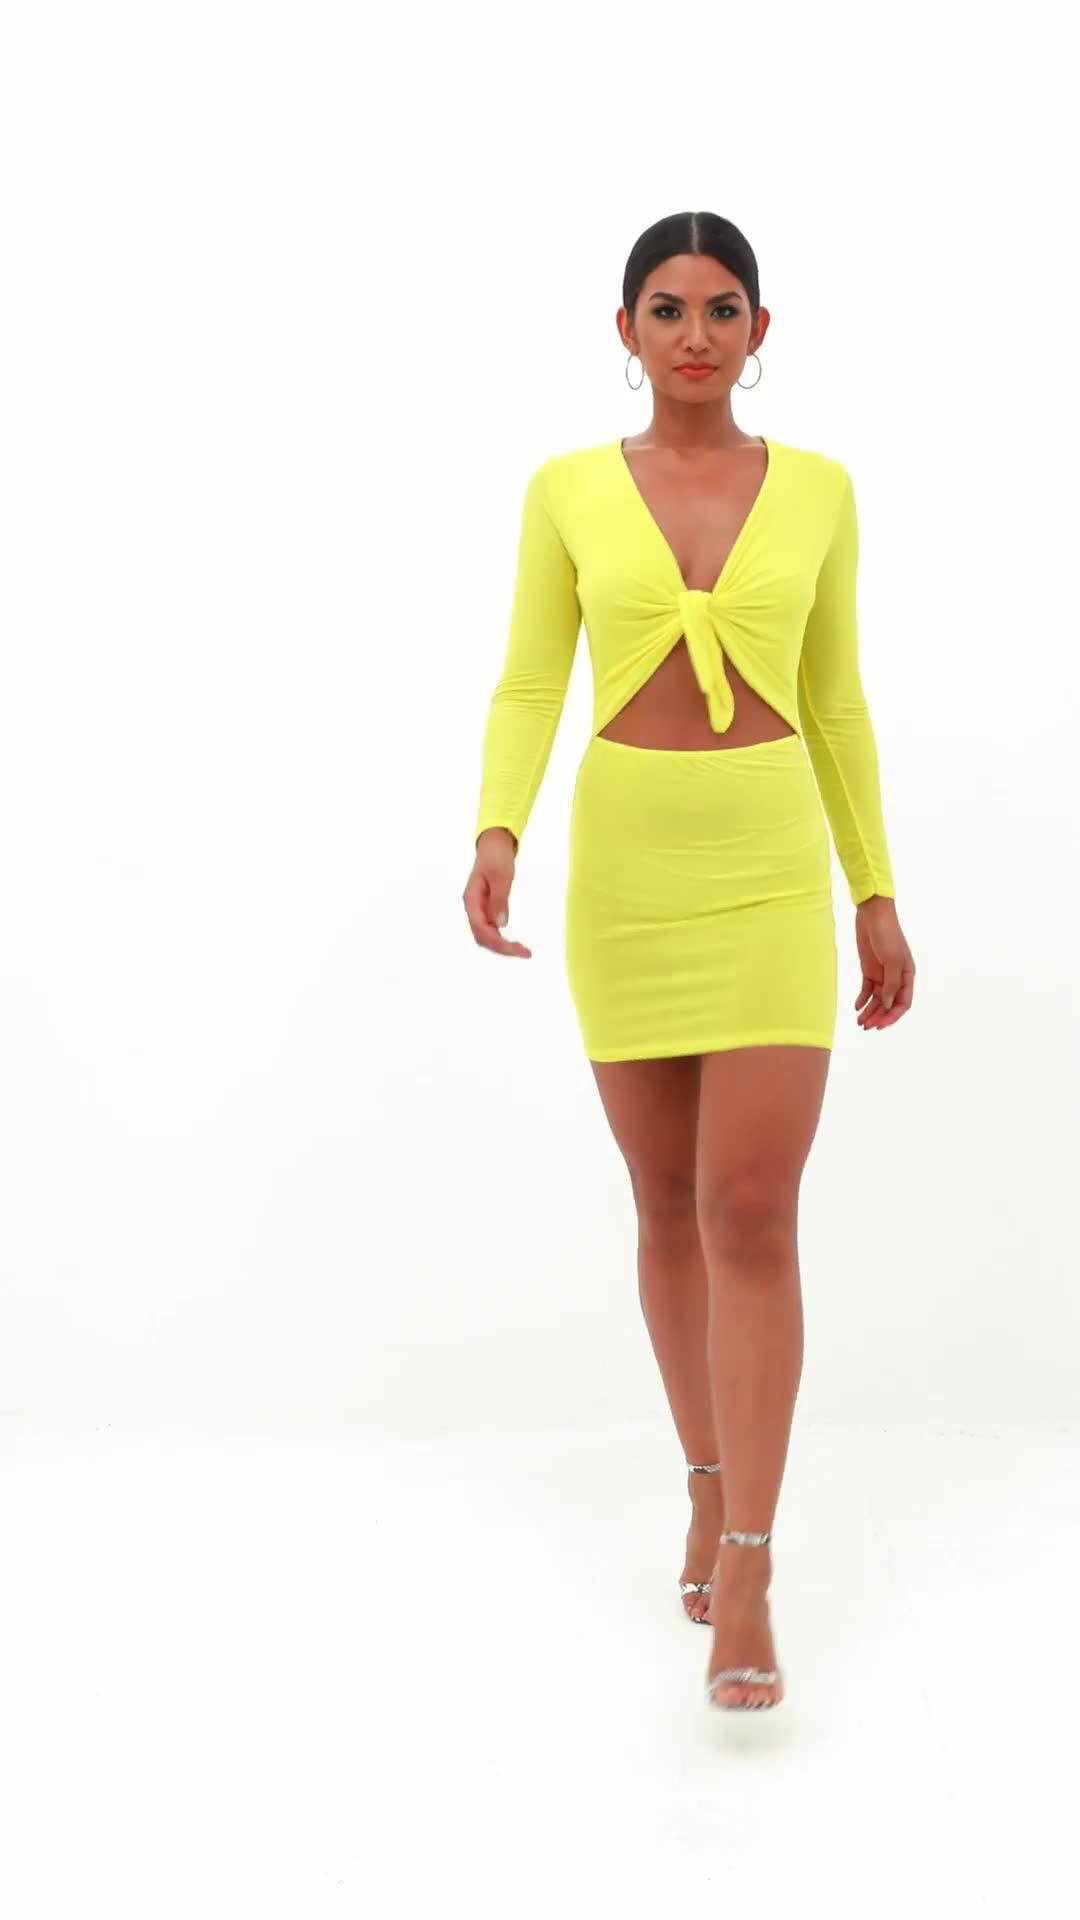 96d61849ef86 Missguided Yellow Tie Front Long Sleeve Bodycon Mini Dress in Yellow ...